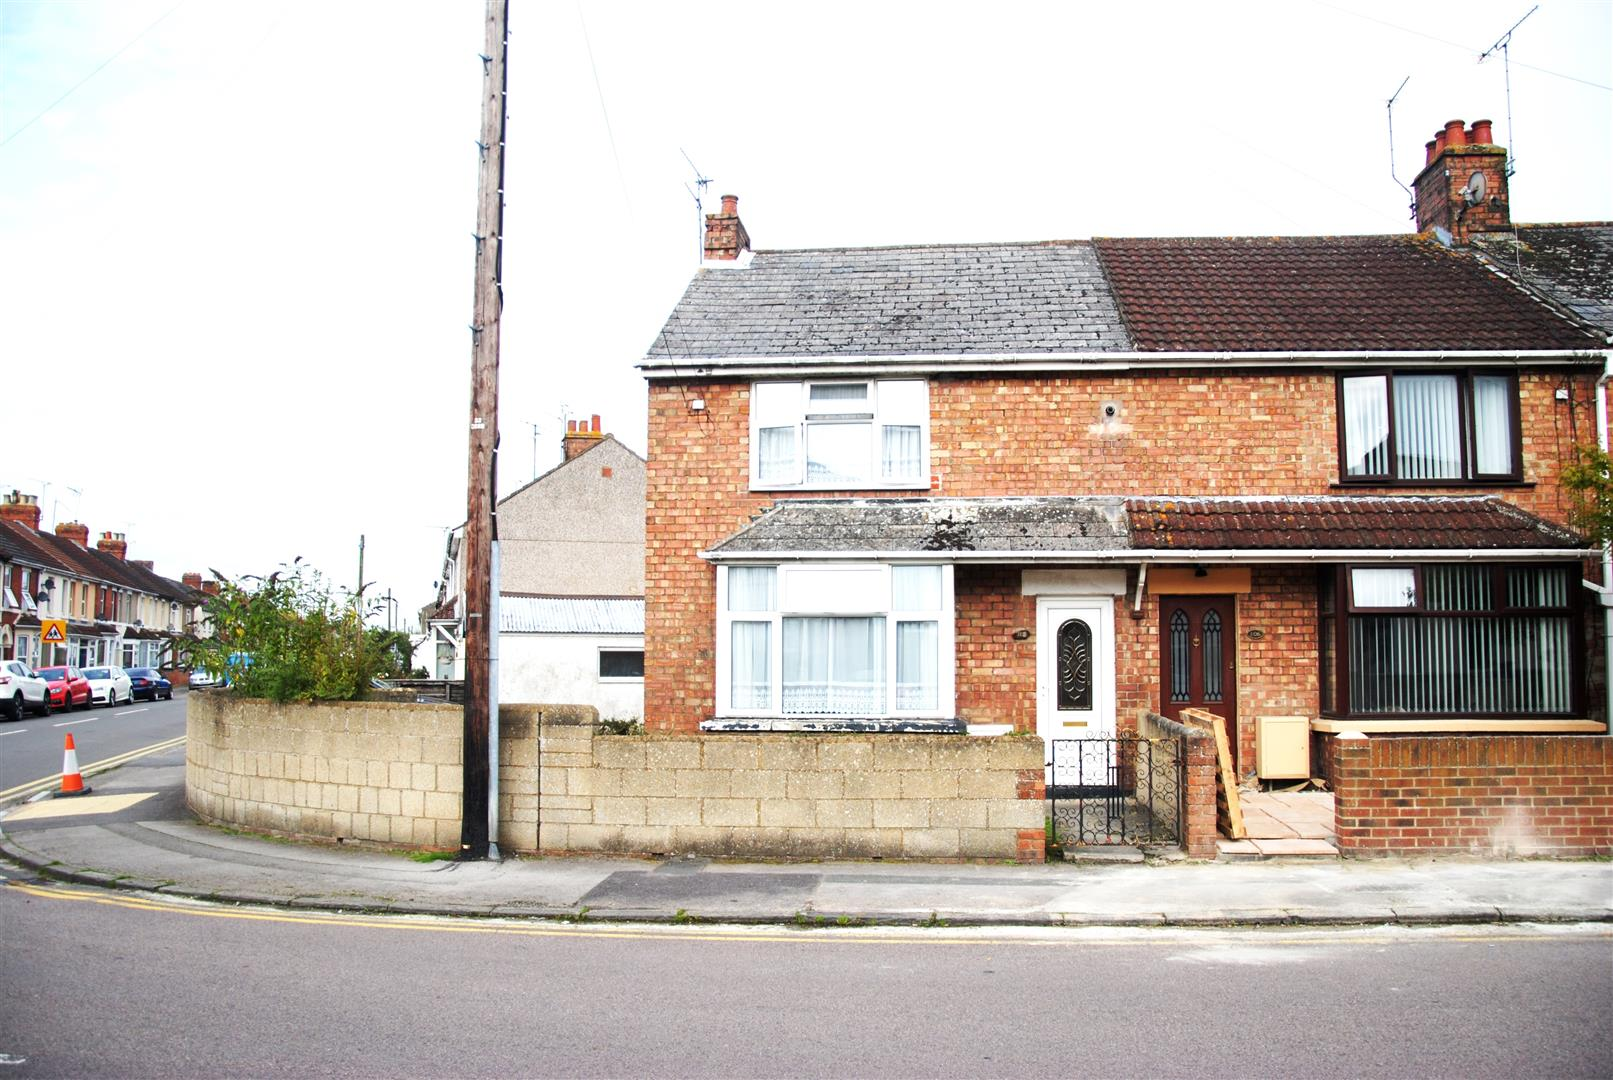 2 Bedrooms End Of Terrace House for sale in Morrison Street, Rodbourne, Swindon